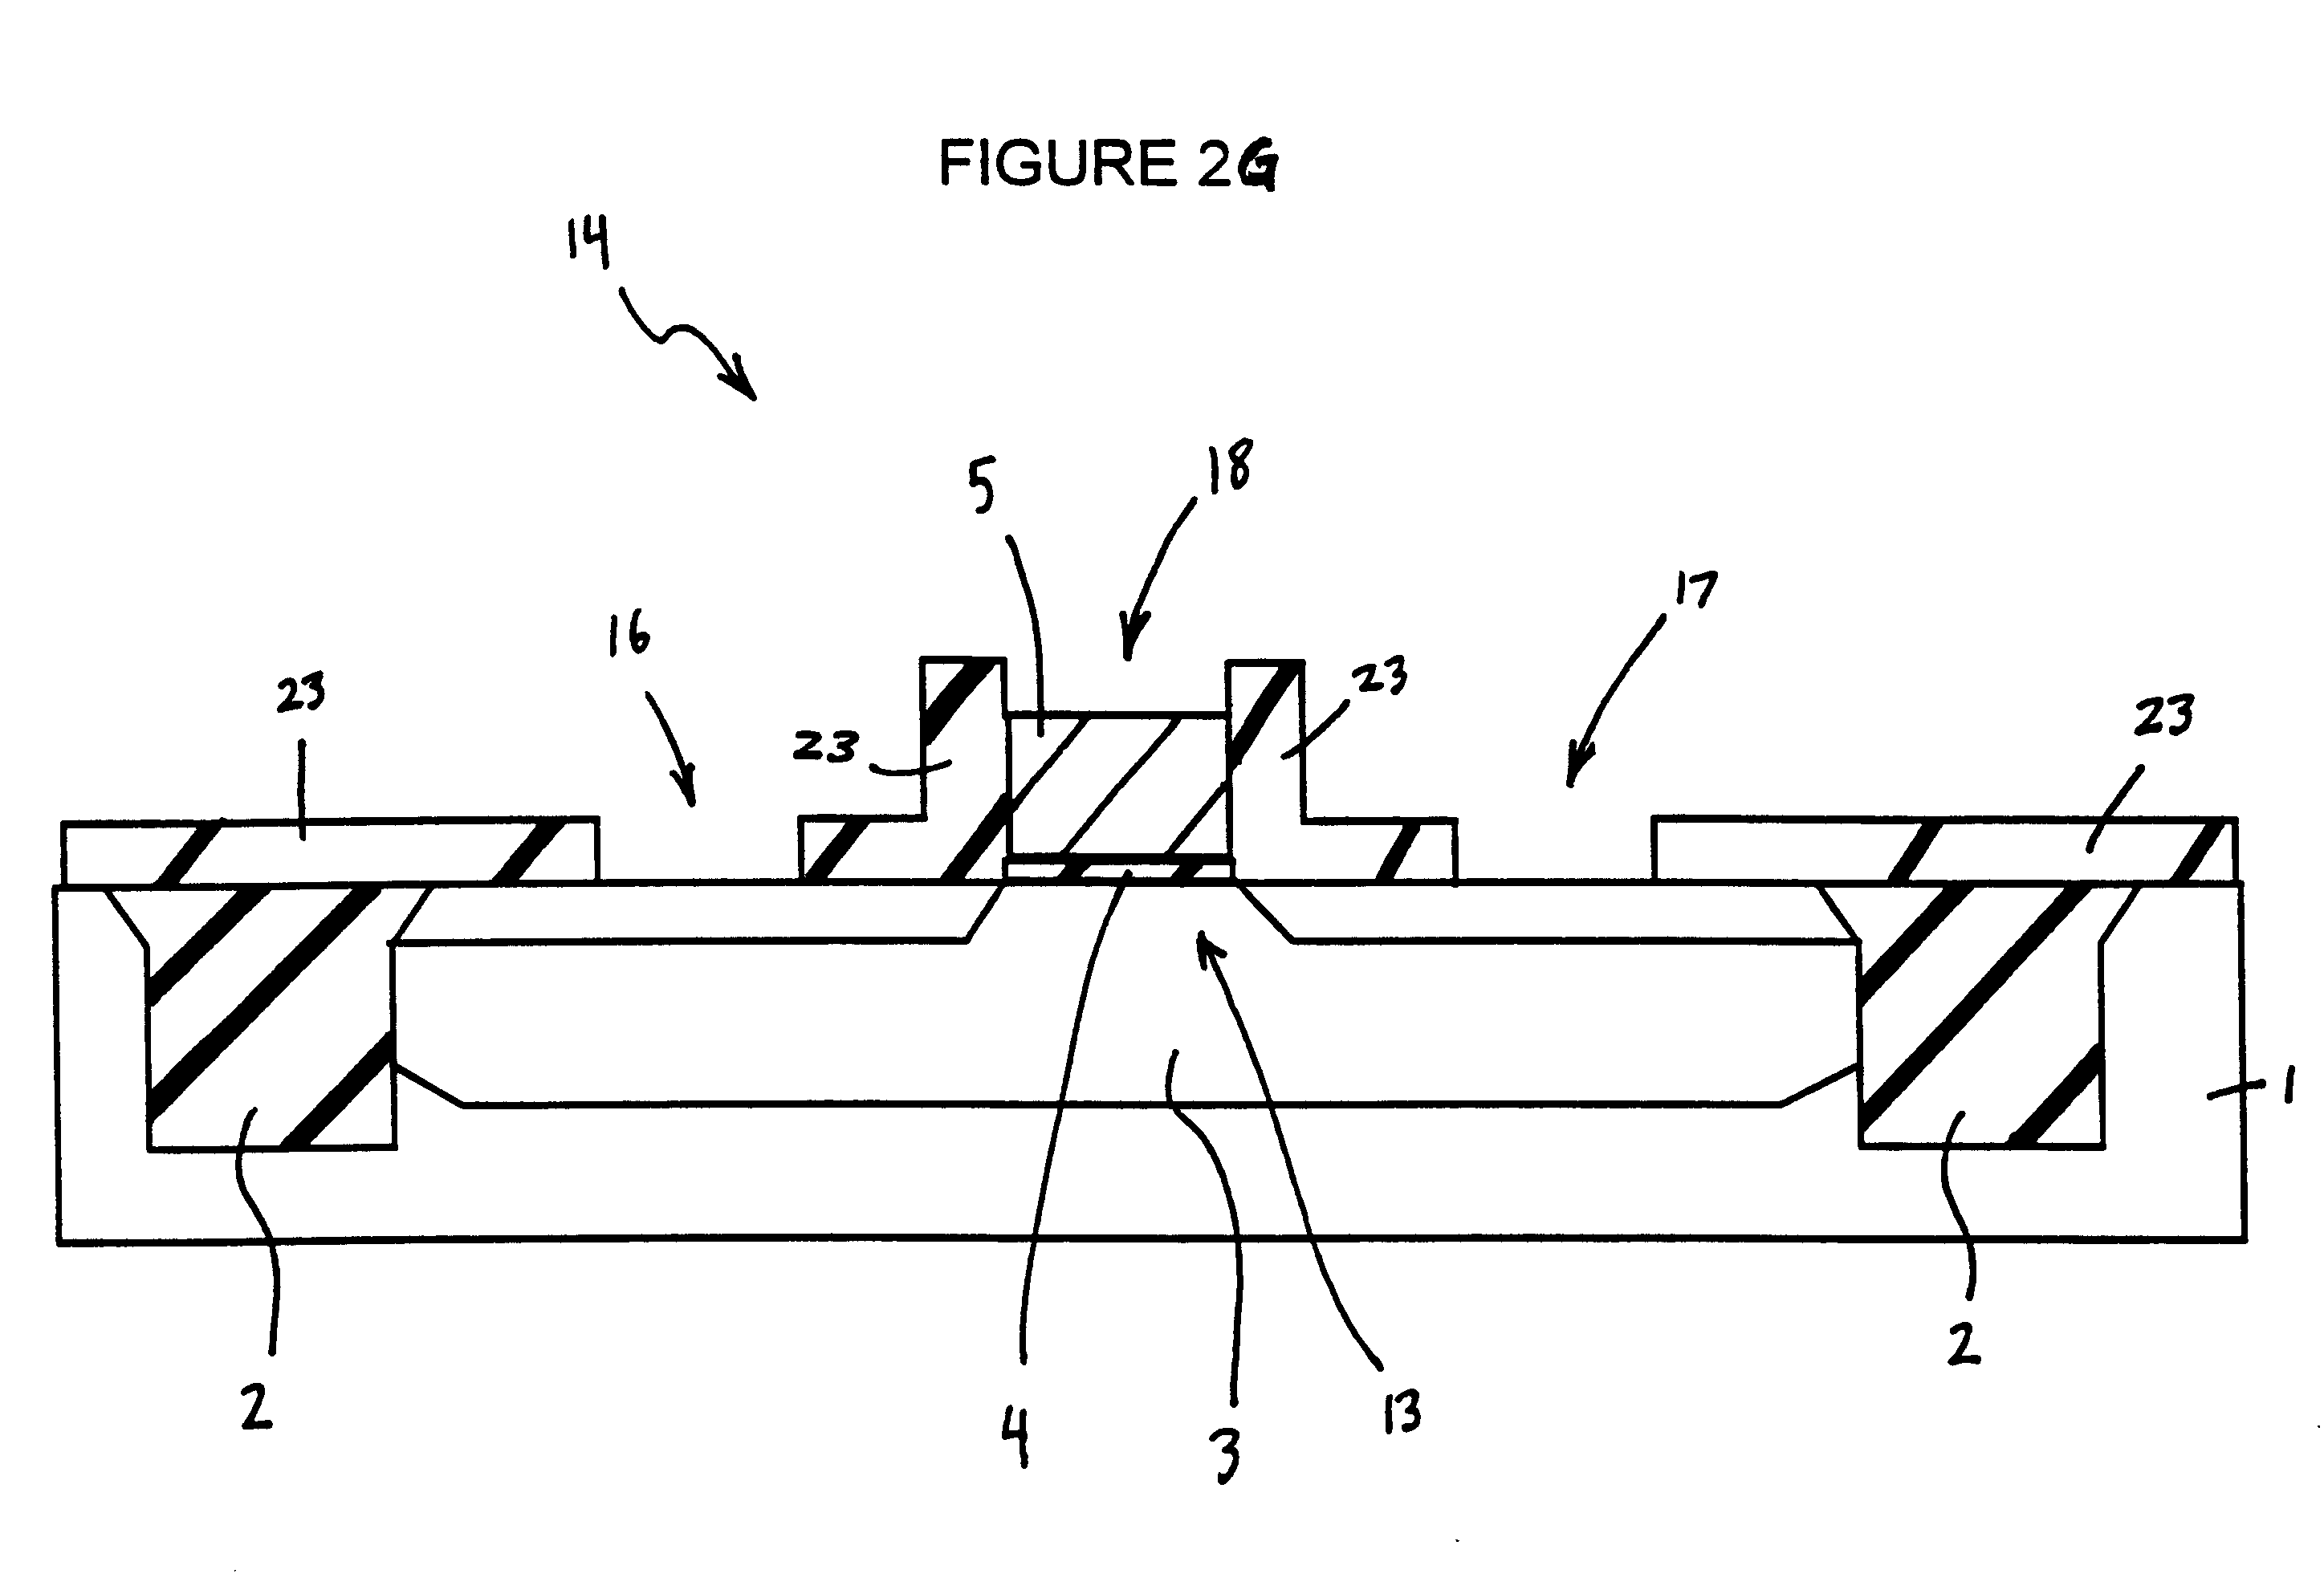 ... and pulse length of radiant energy used ... - Google Patents